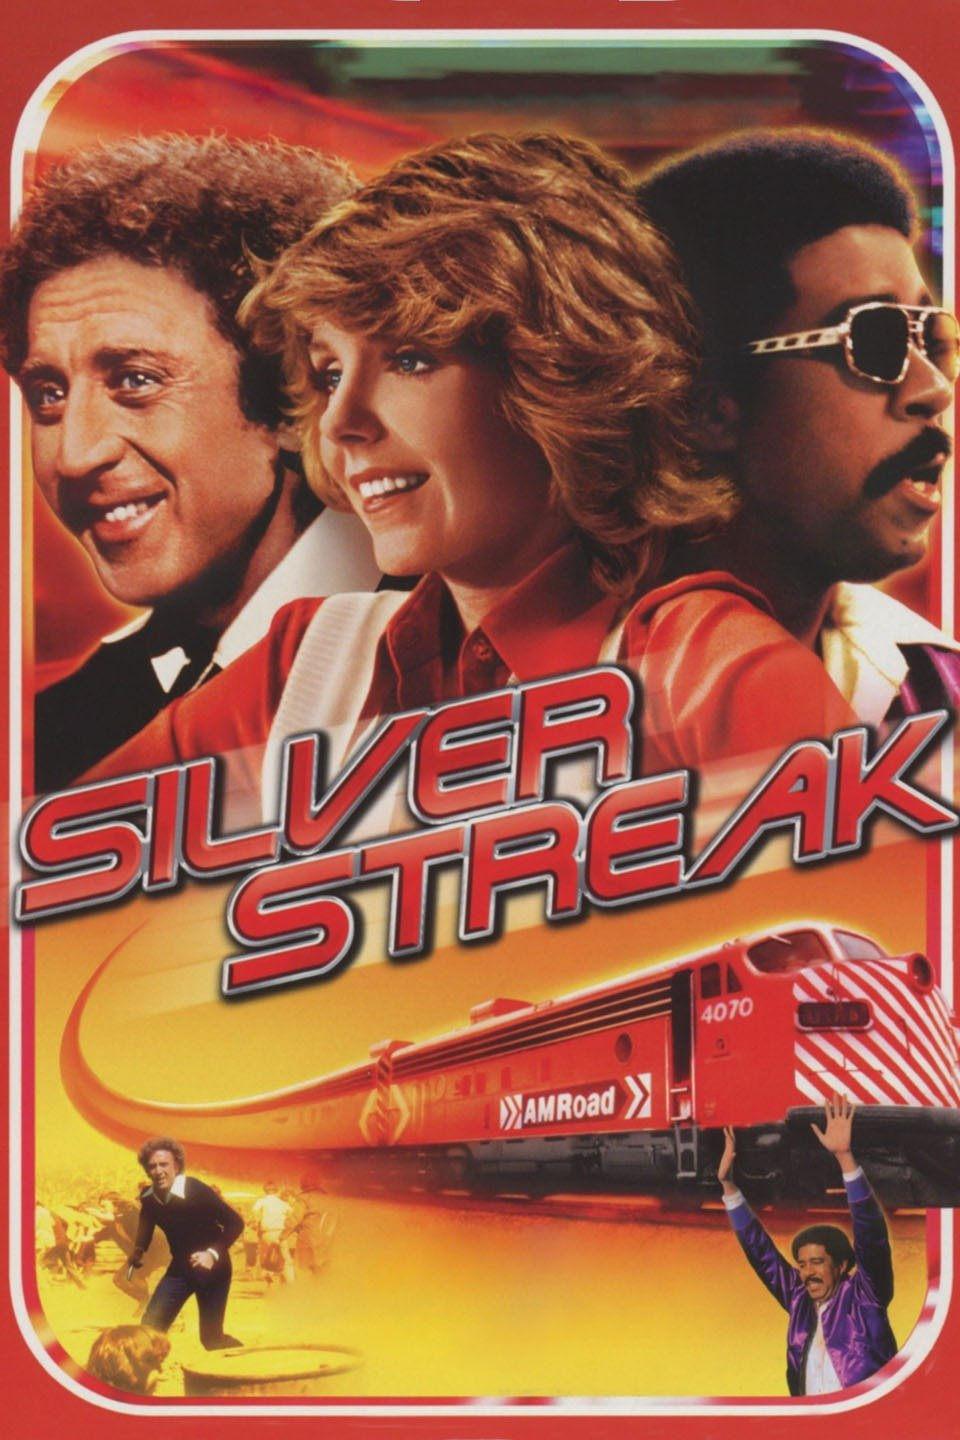 Silver Streak promotional image/DVD cover